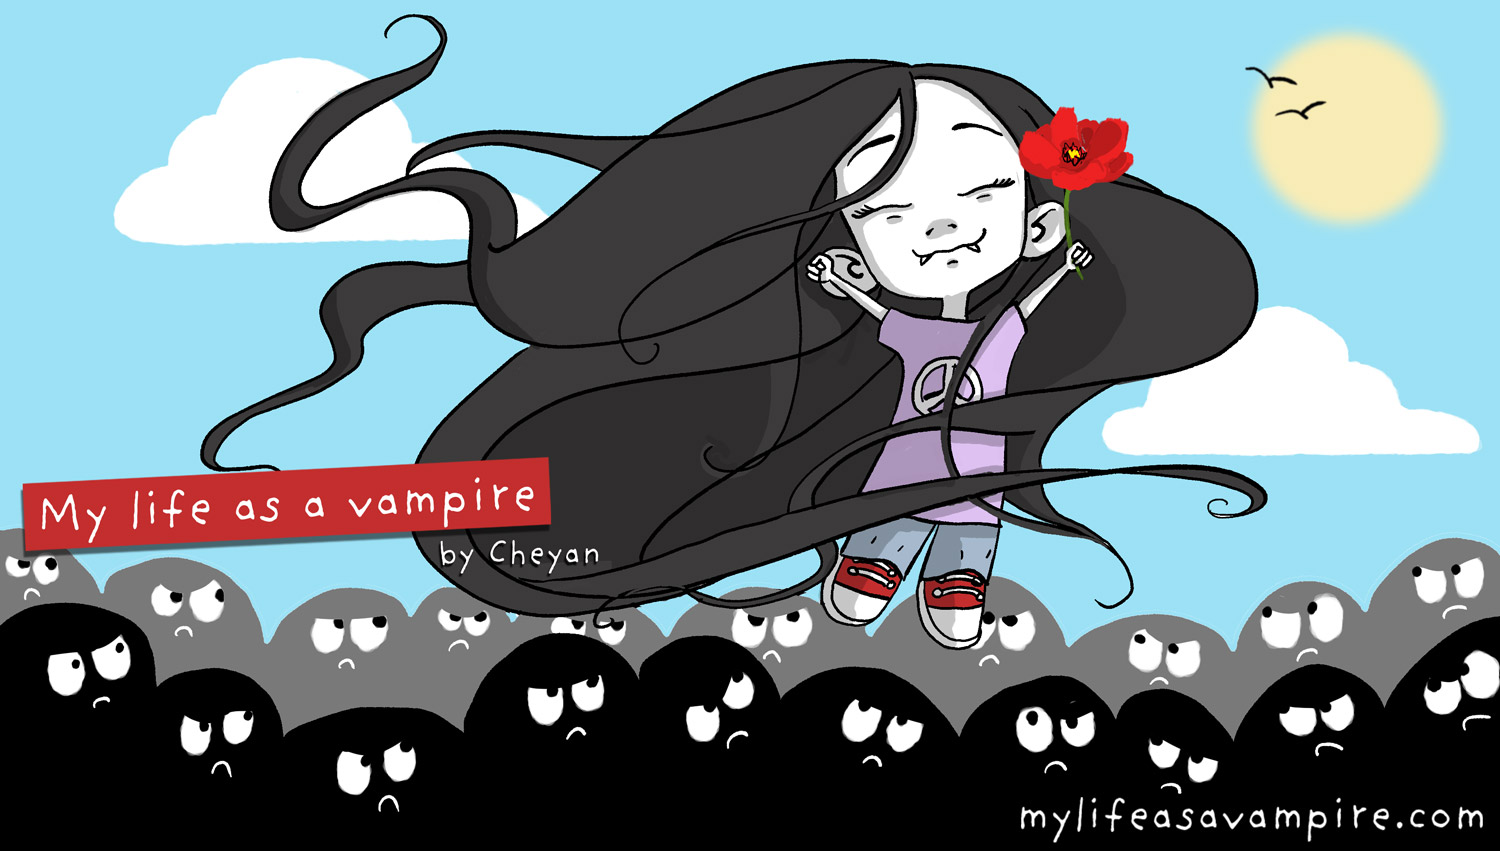 Zabeth the Vampire rises above the black silhouettes who look at her meanly, happy, to enjoy the sun.